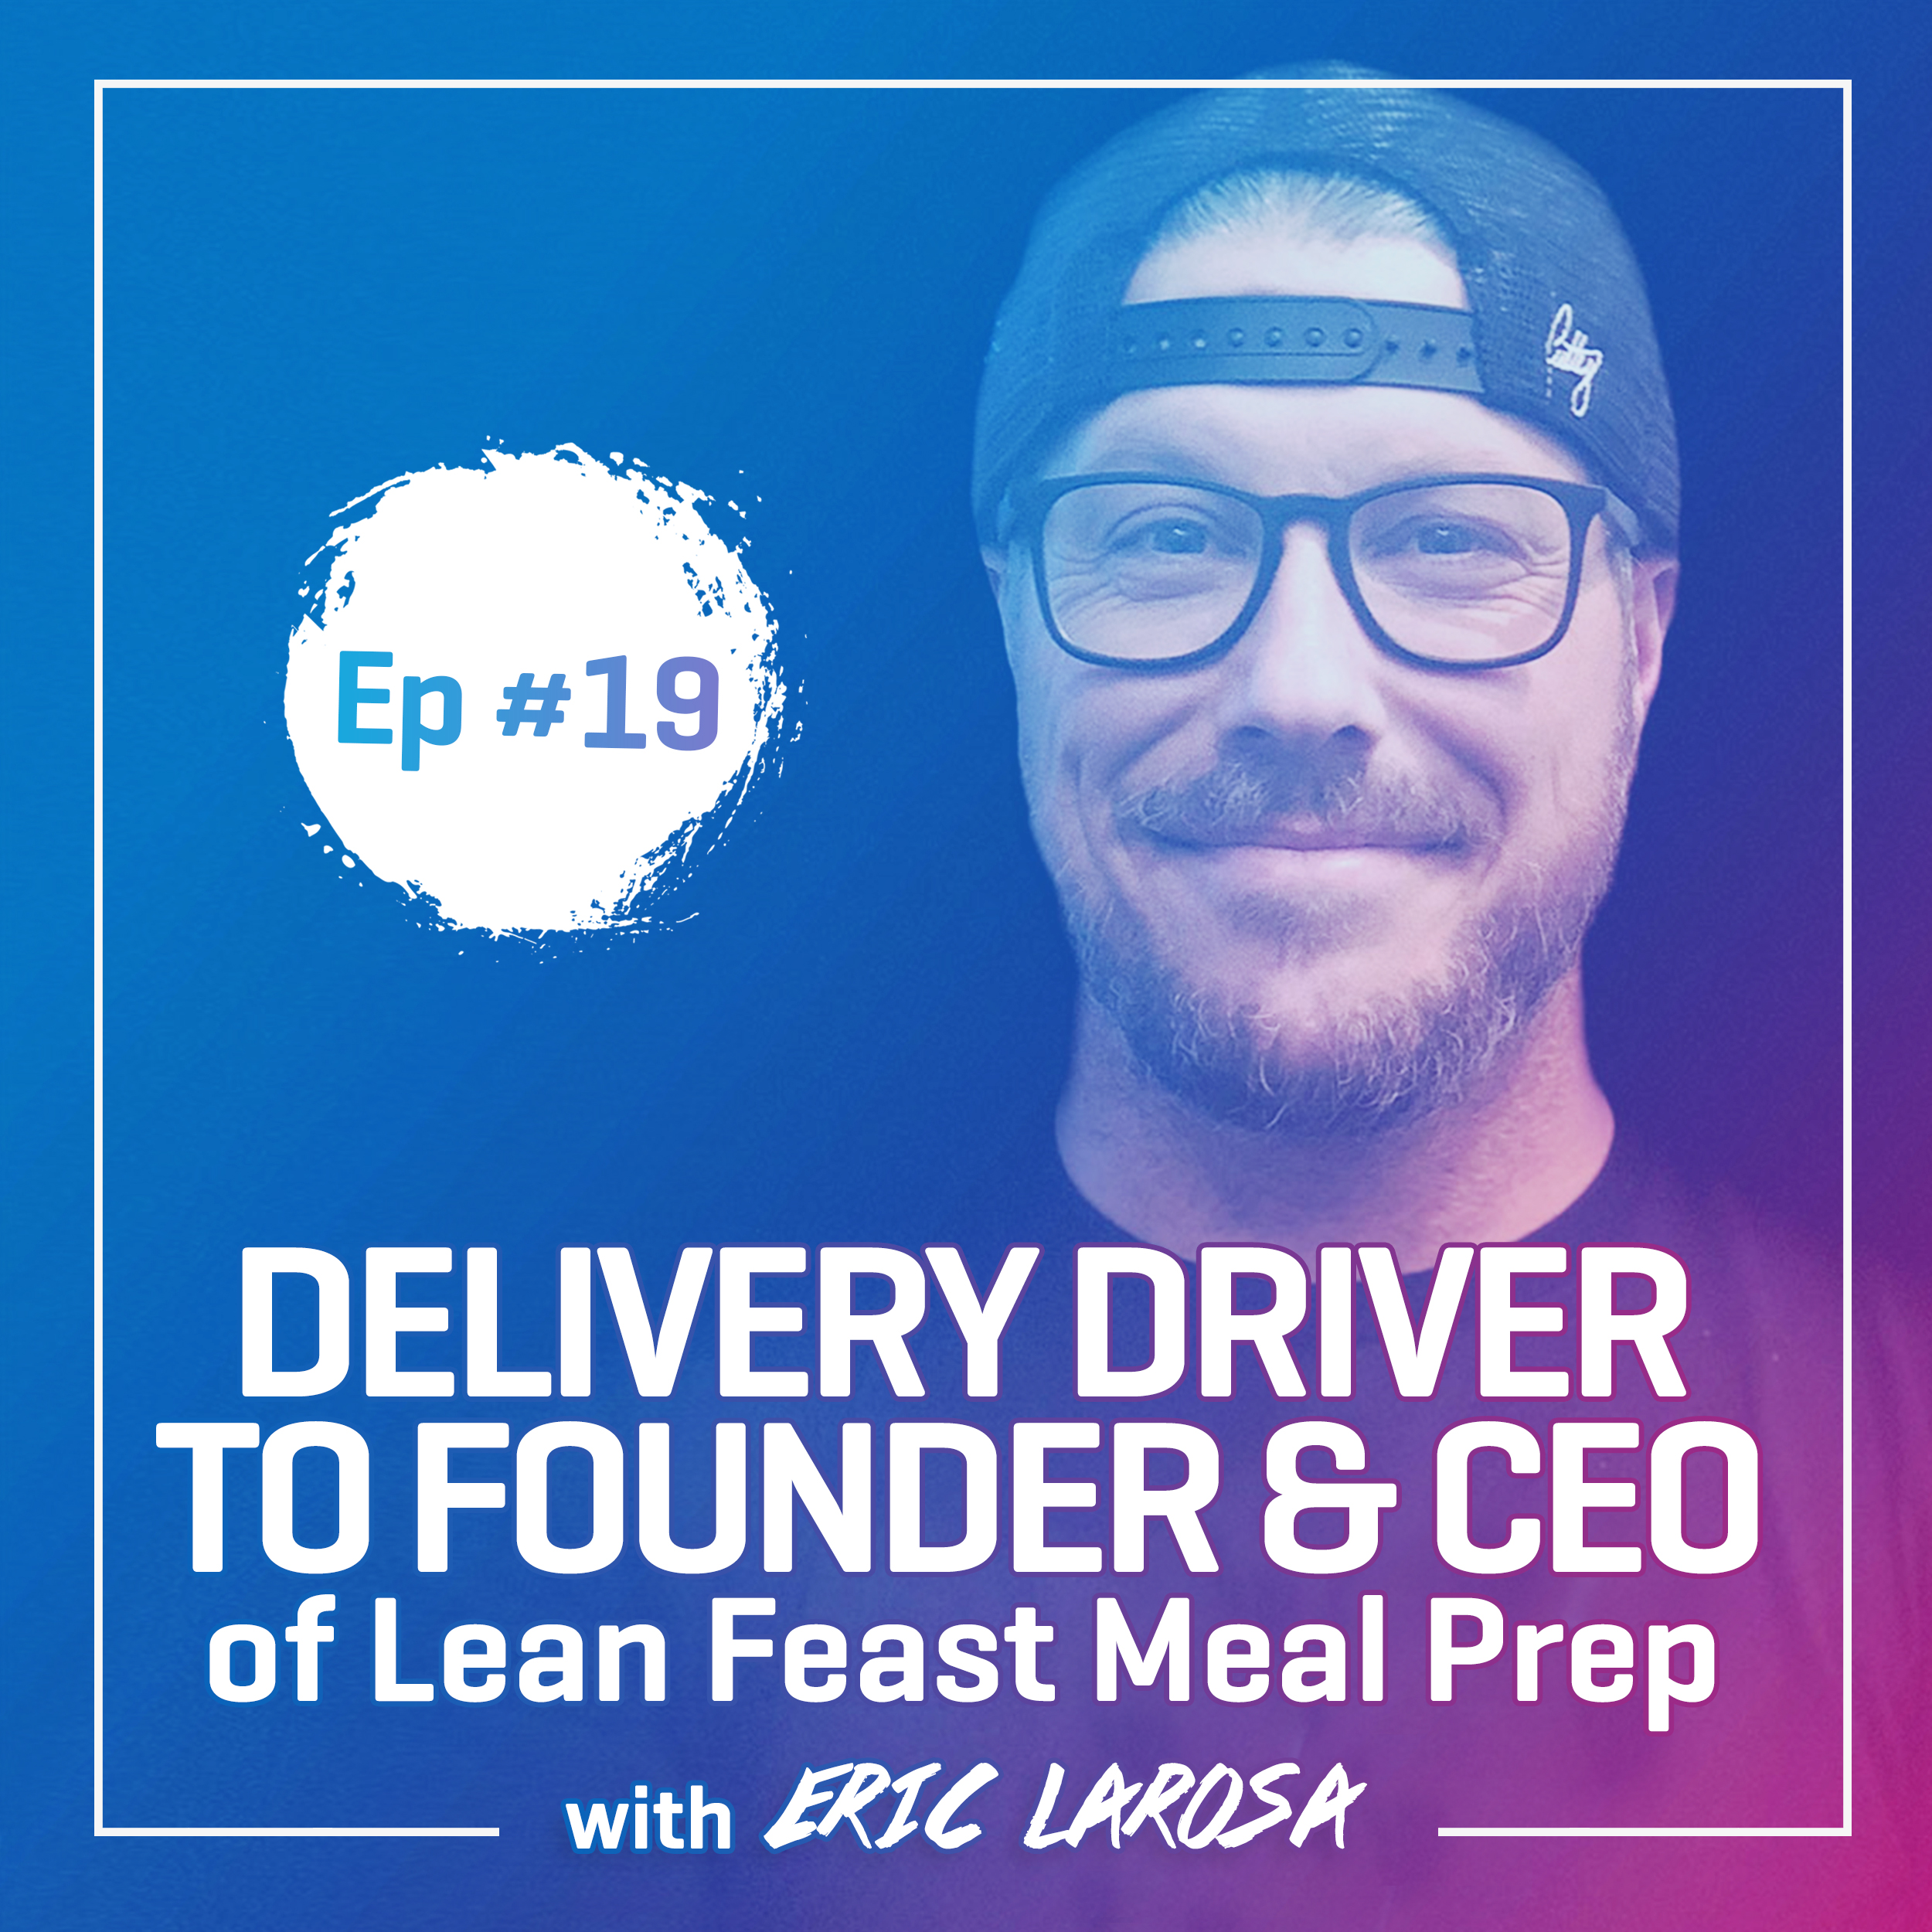 #19: Delivery Driver to Founder & CEO of Lean Feast Meal Prep with Eric Larosa